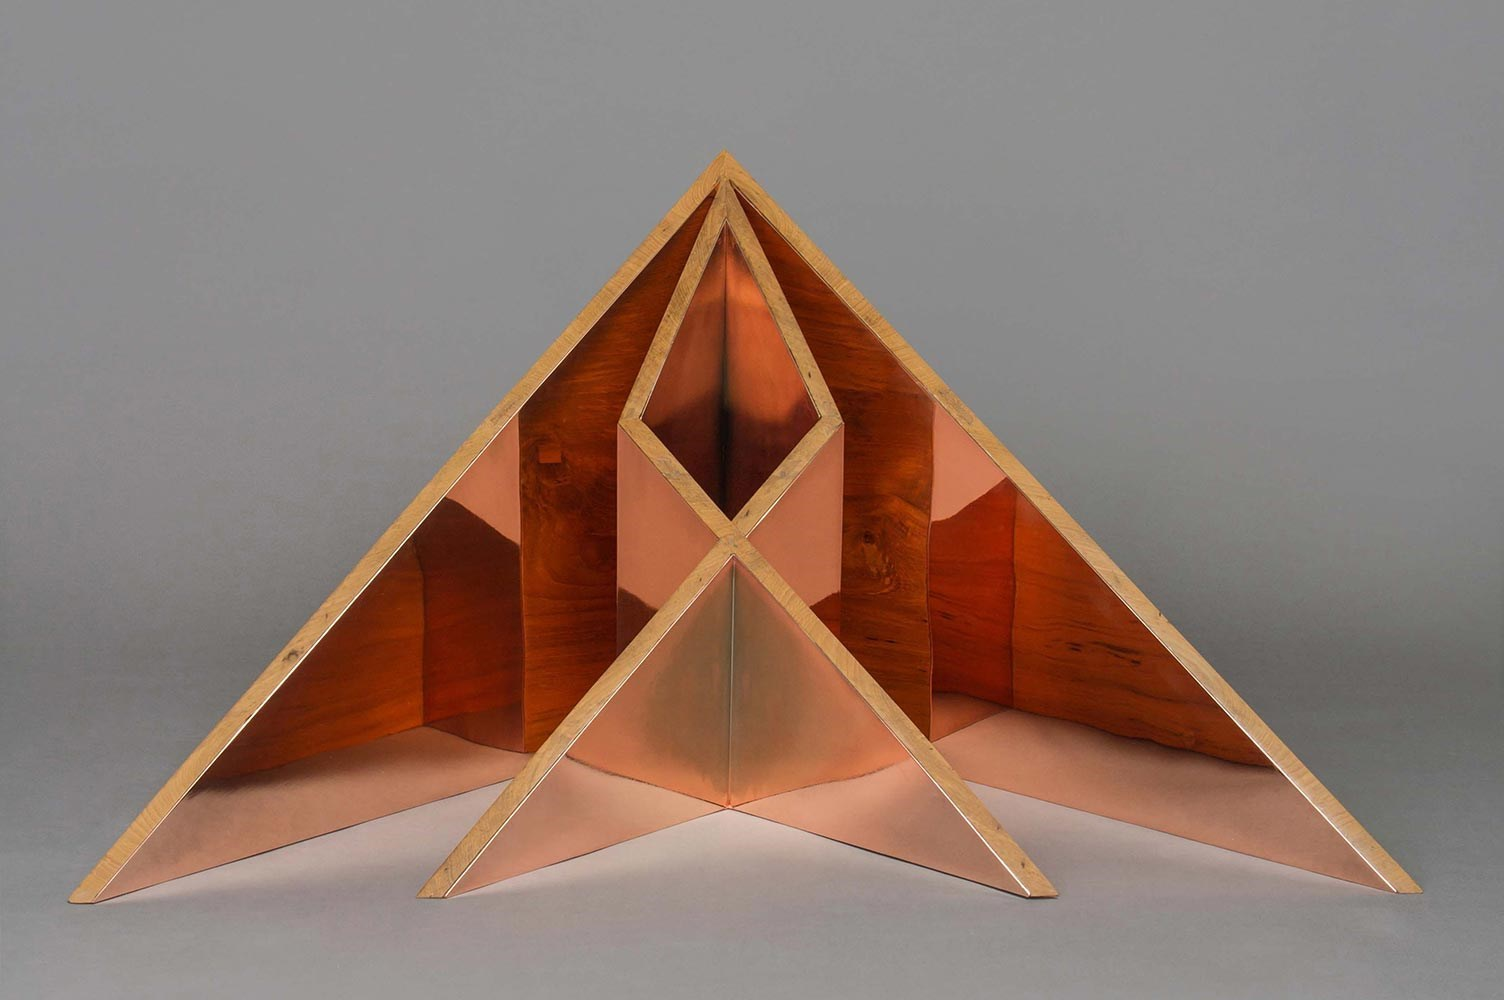 geometric furniture upcycled orumirror geometric furniture form and function origamistyle